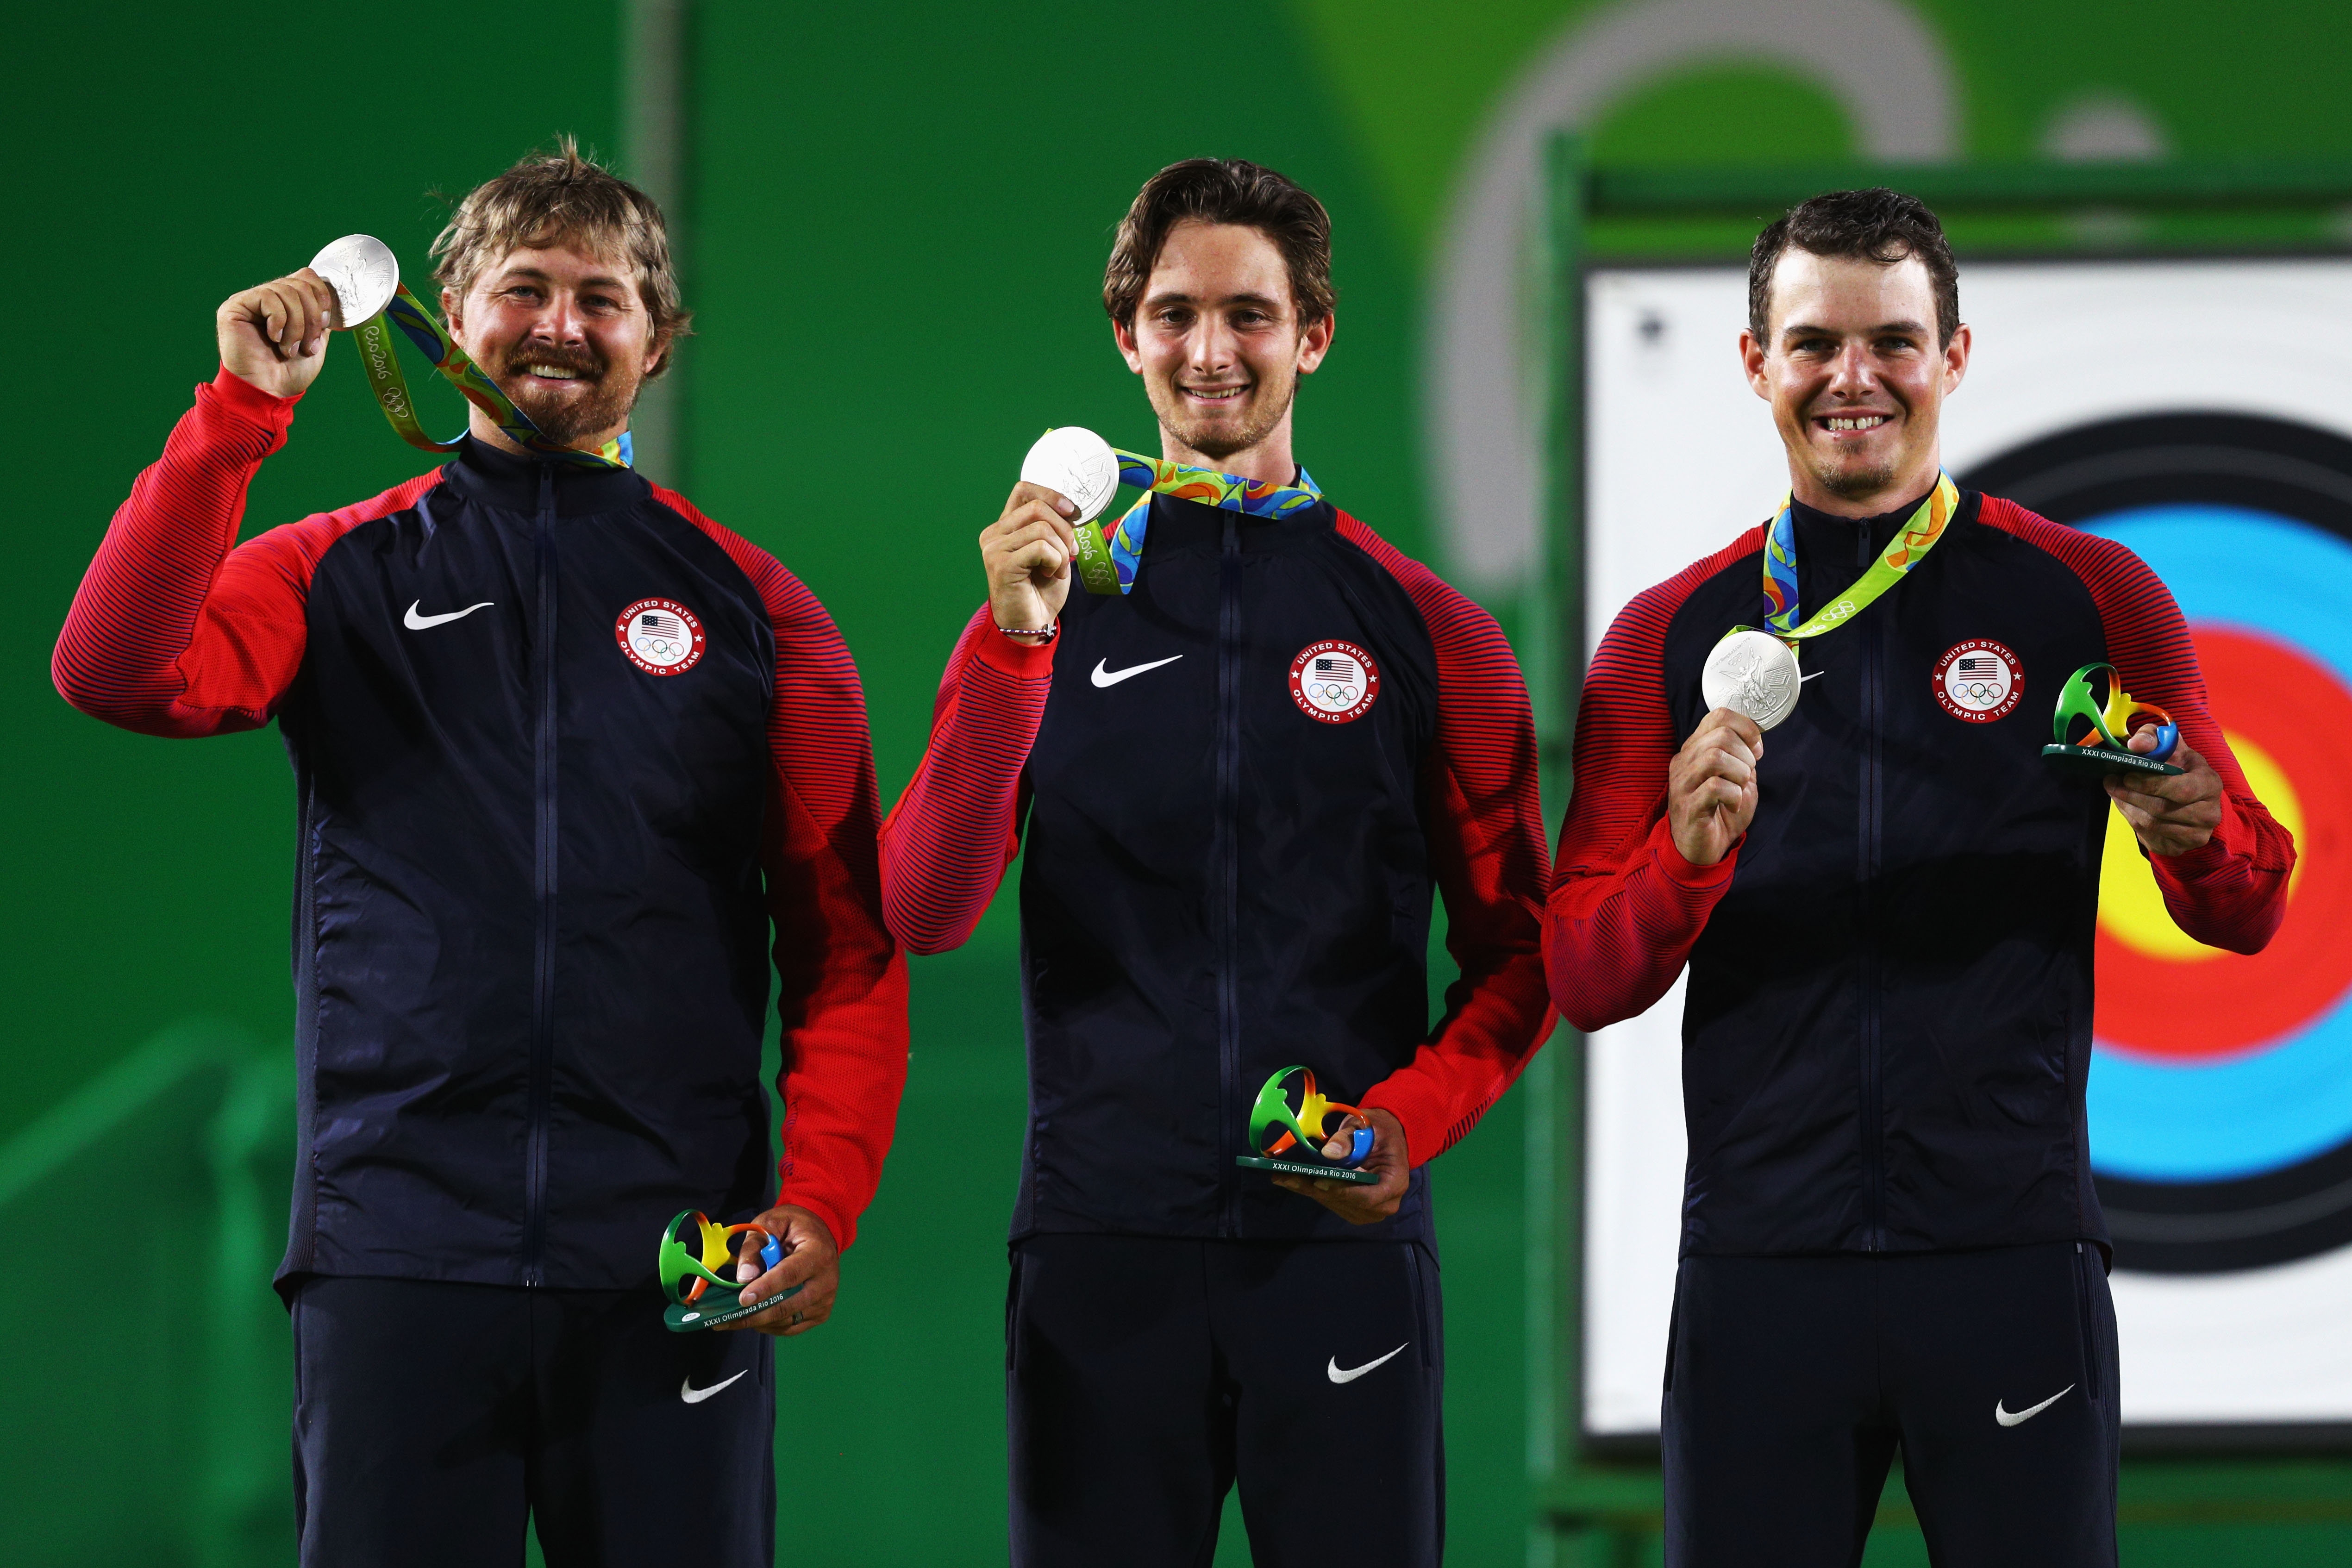 From left, Brady Ellison, Zach Garrett and Jake Kaminski of the United States celebrate with their silver medals for men's archery. Kaminski, an Elma native, was also on a silver-winning team in 2012.